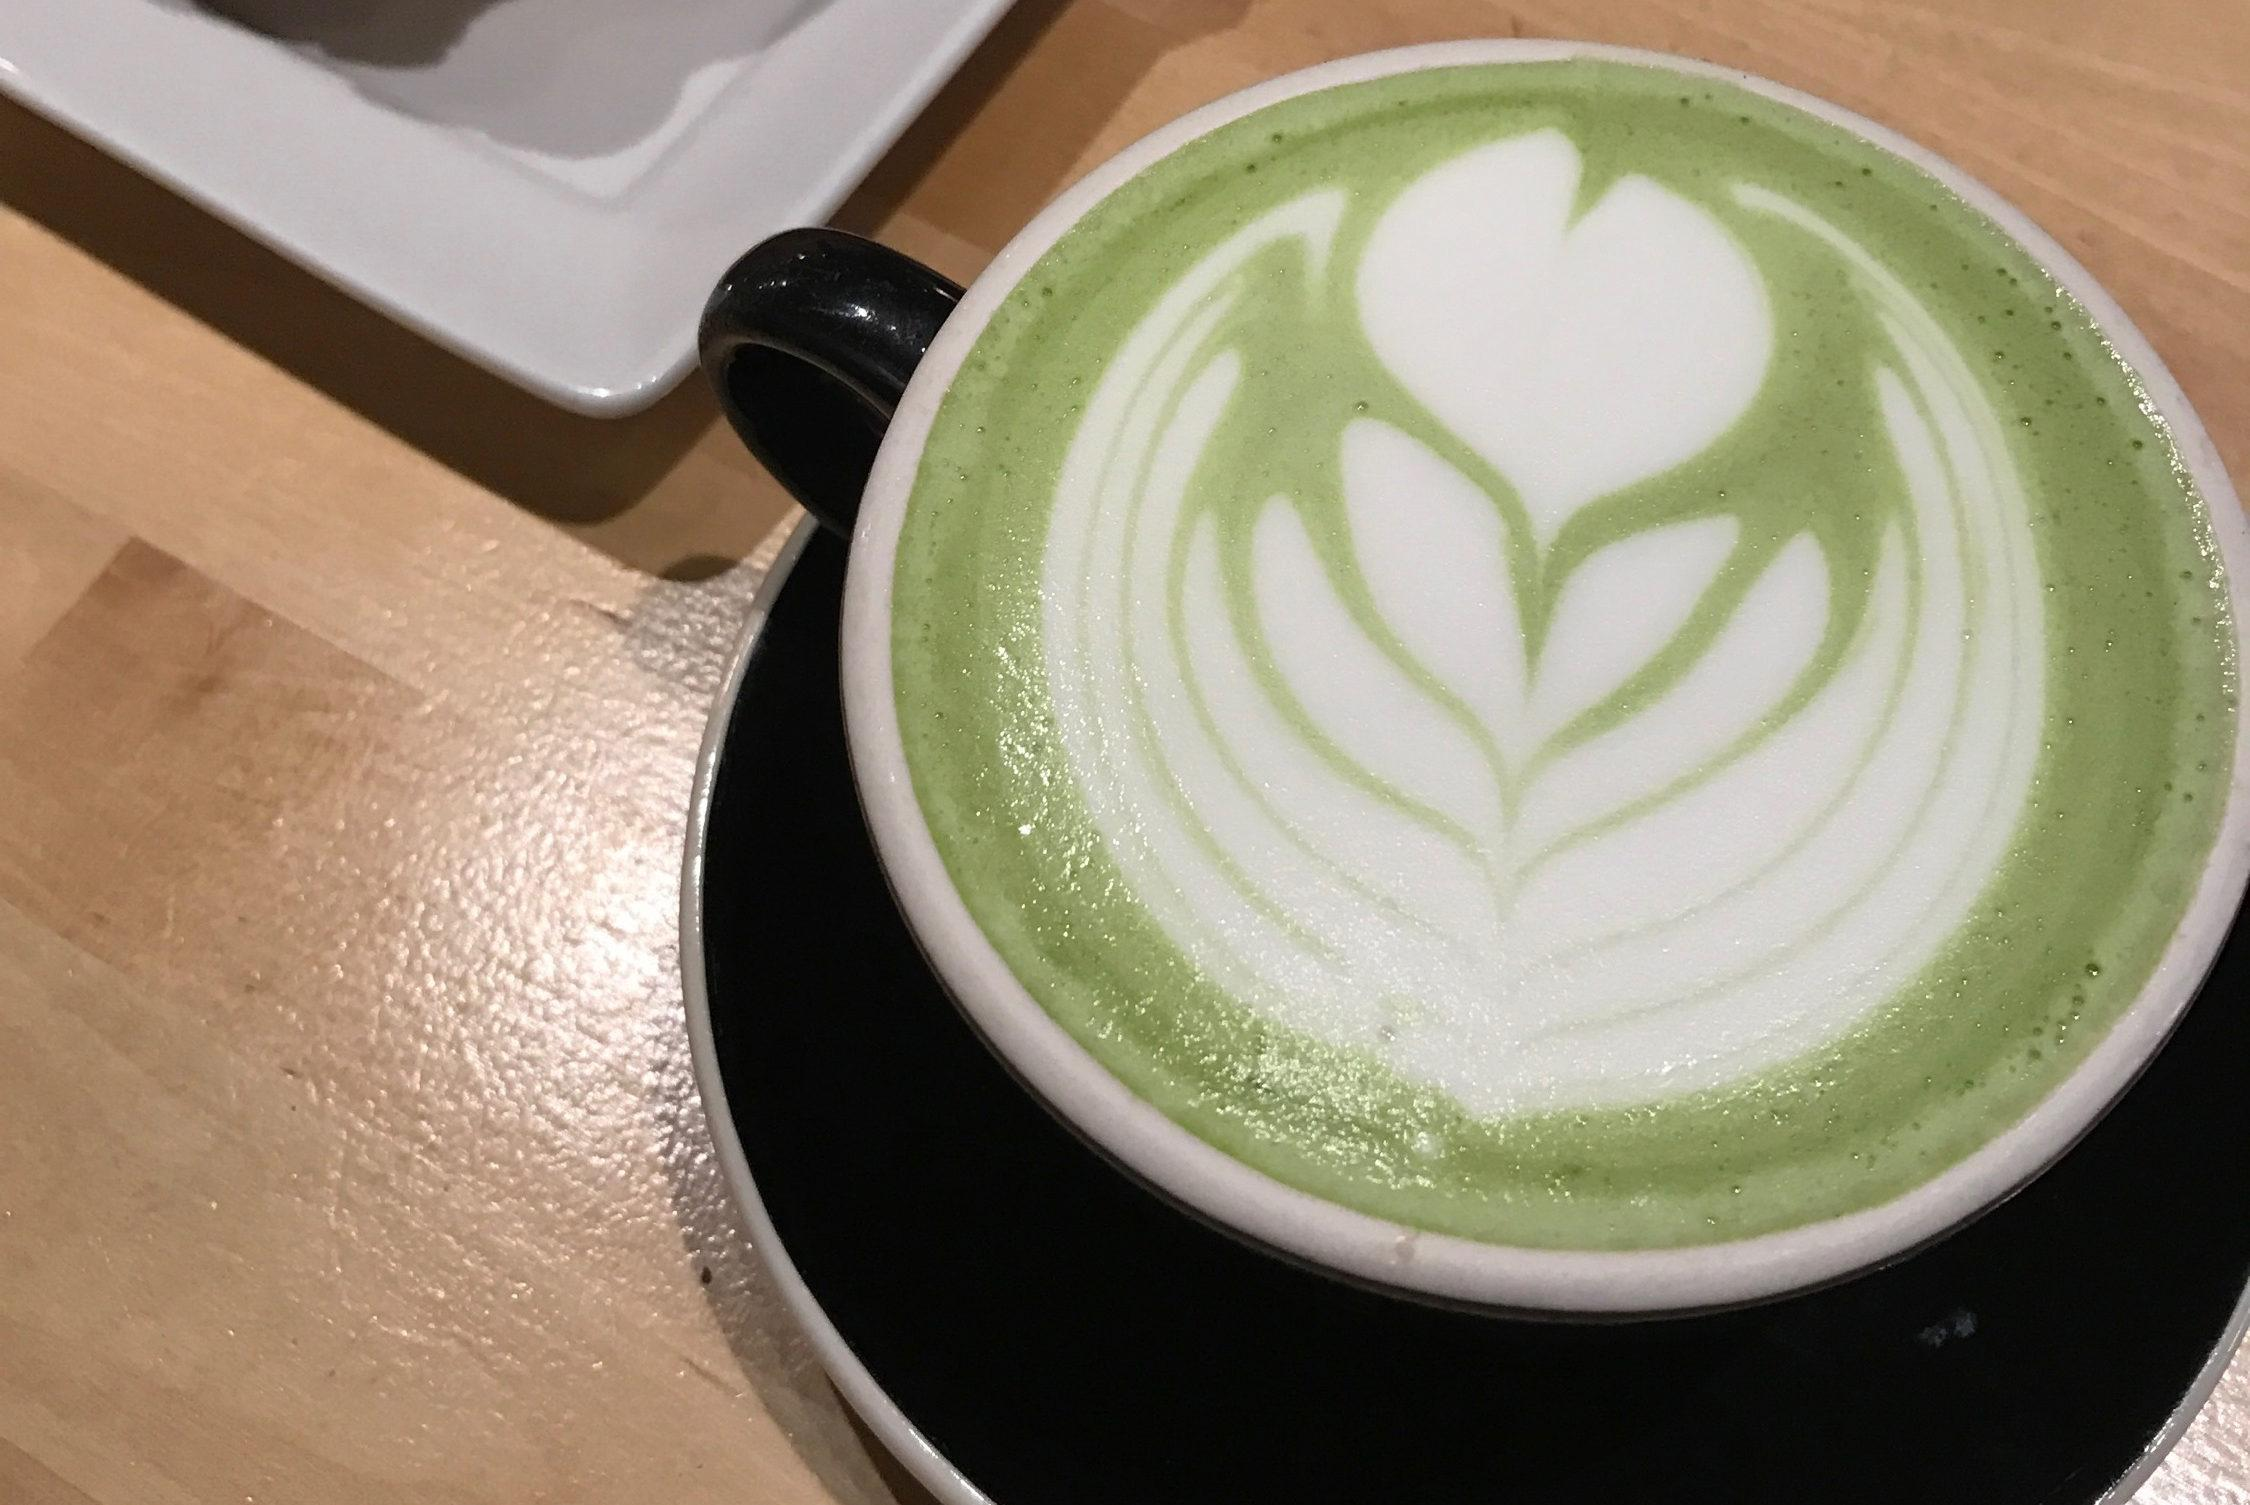 Matcha Latte with croissant. Photos by Meera Singh '19.